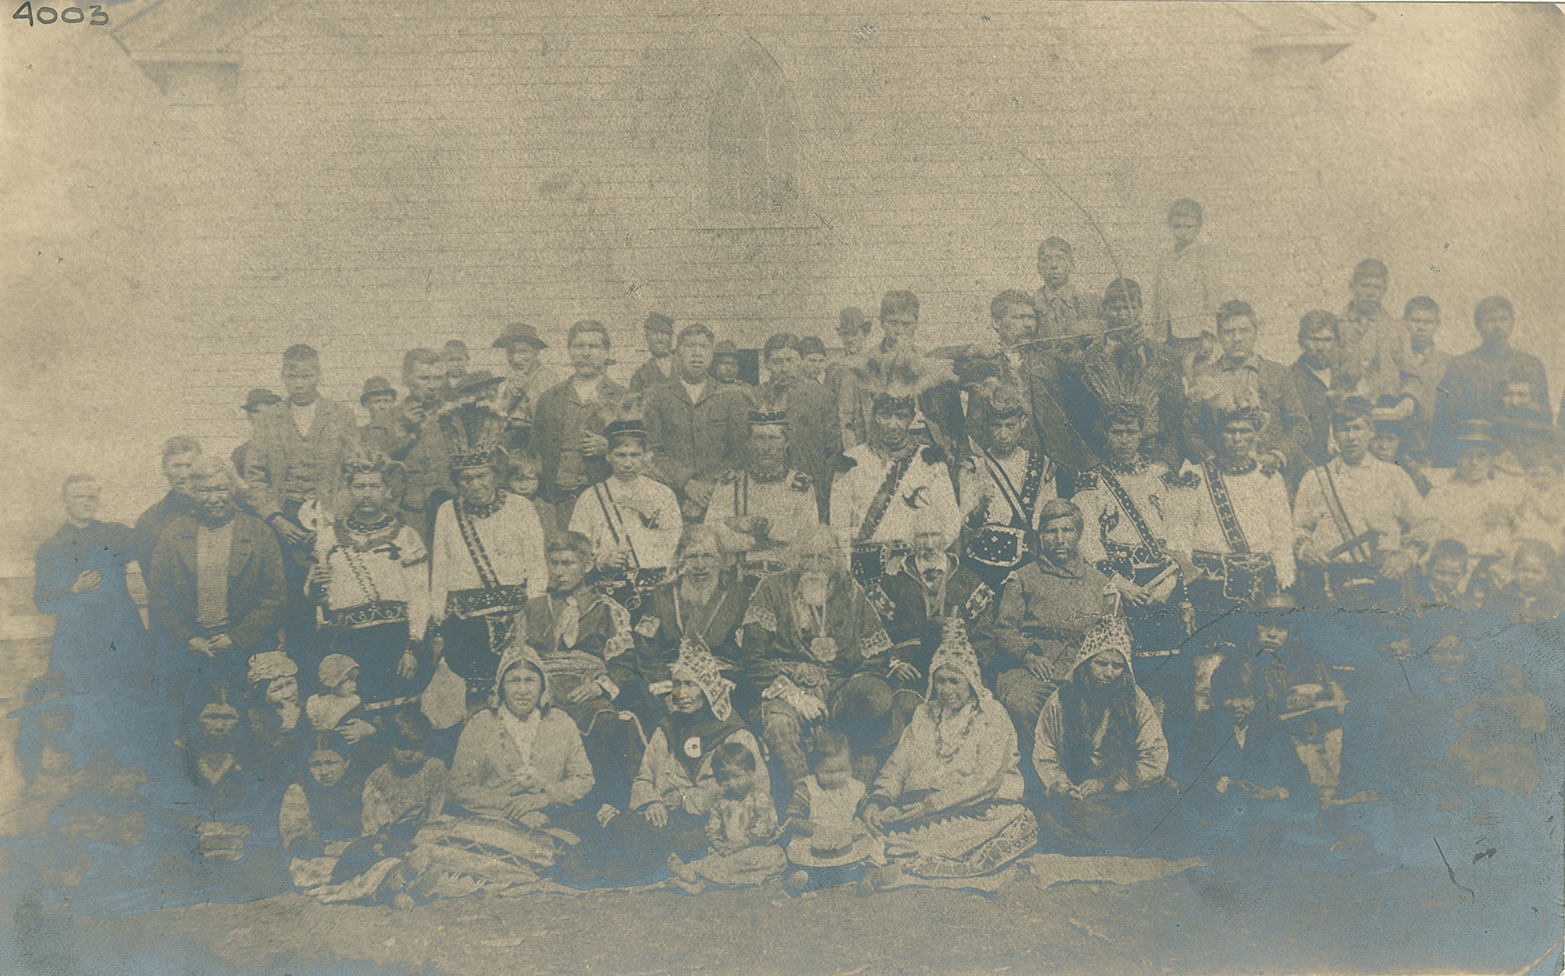 Group photo including Mi'kmaq women, men and children